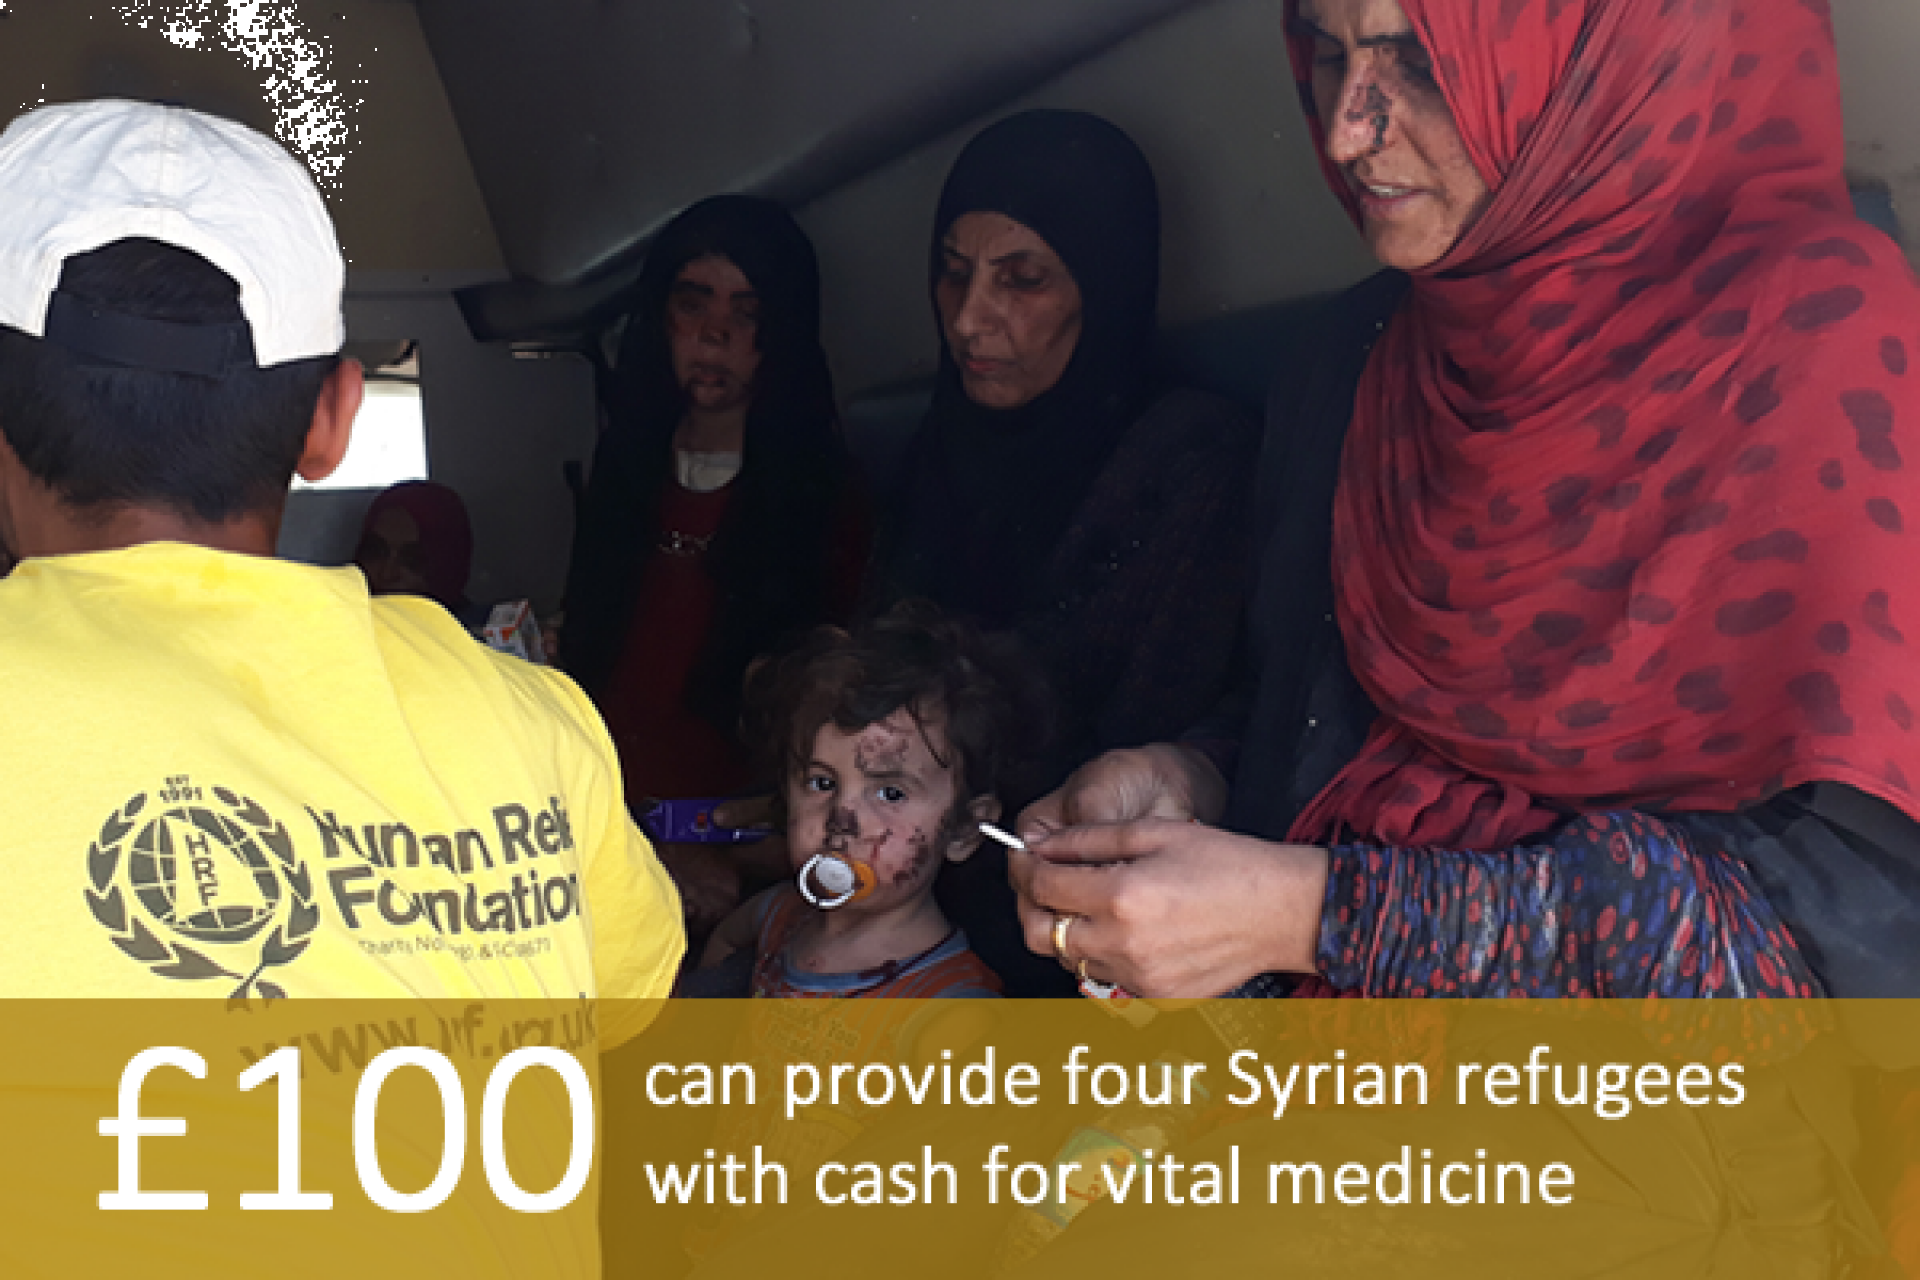 £100 can provide four Syrian refugees with cash for vital medicine